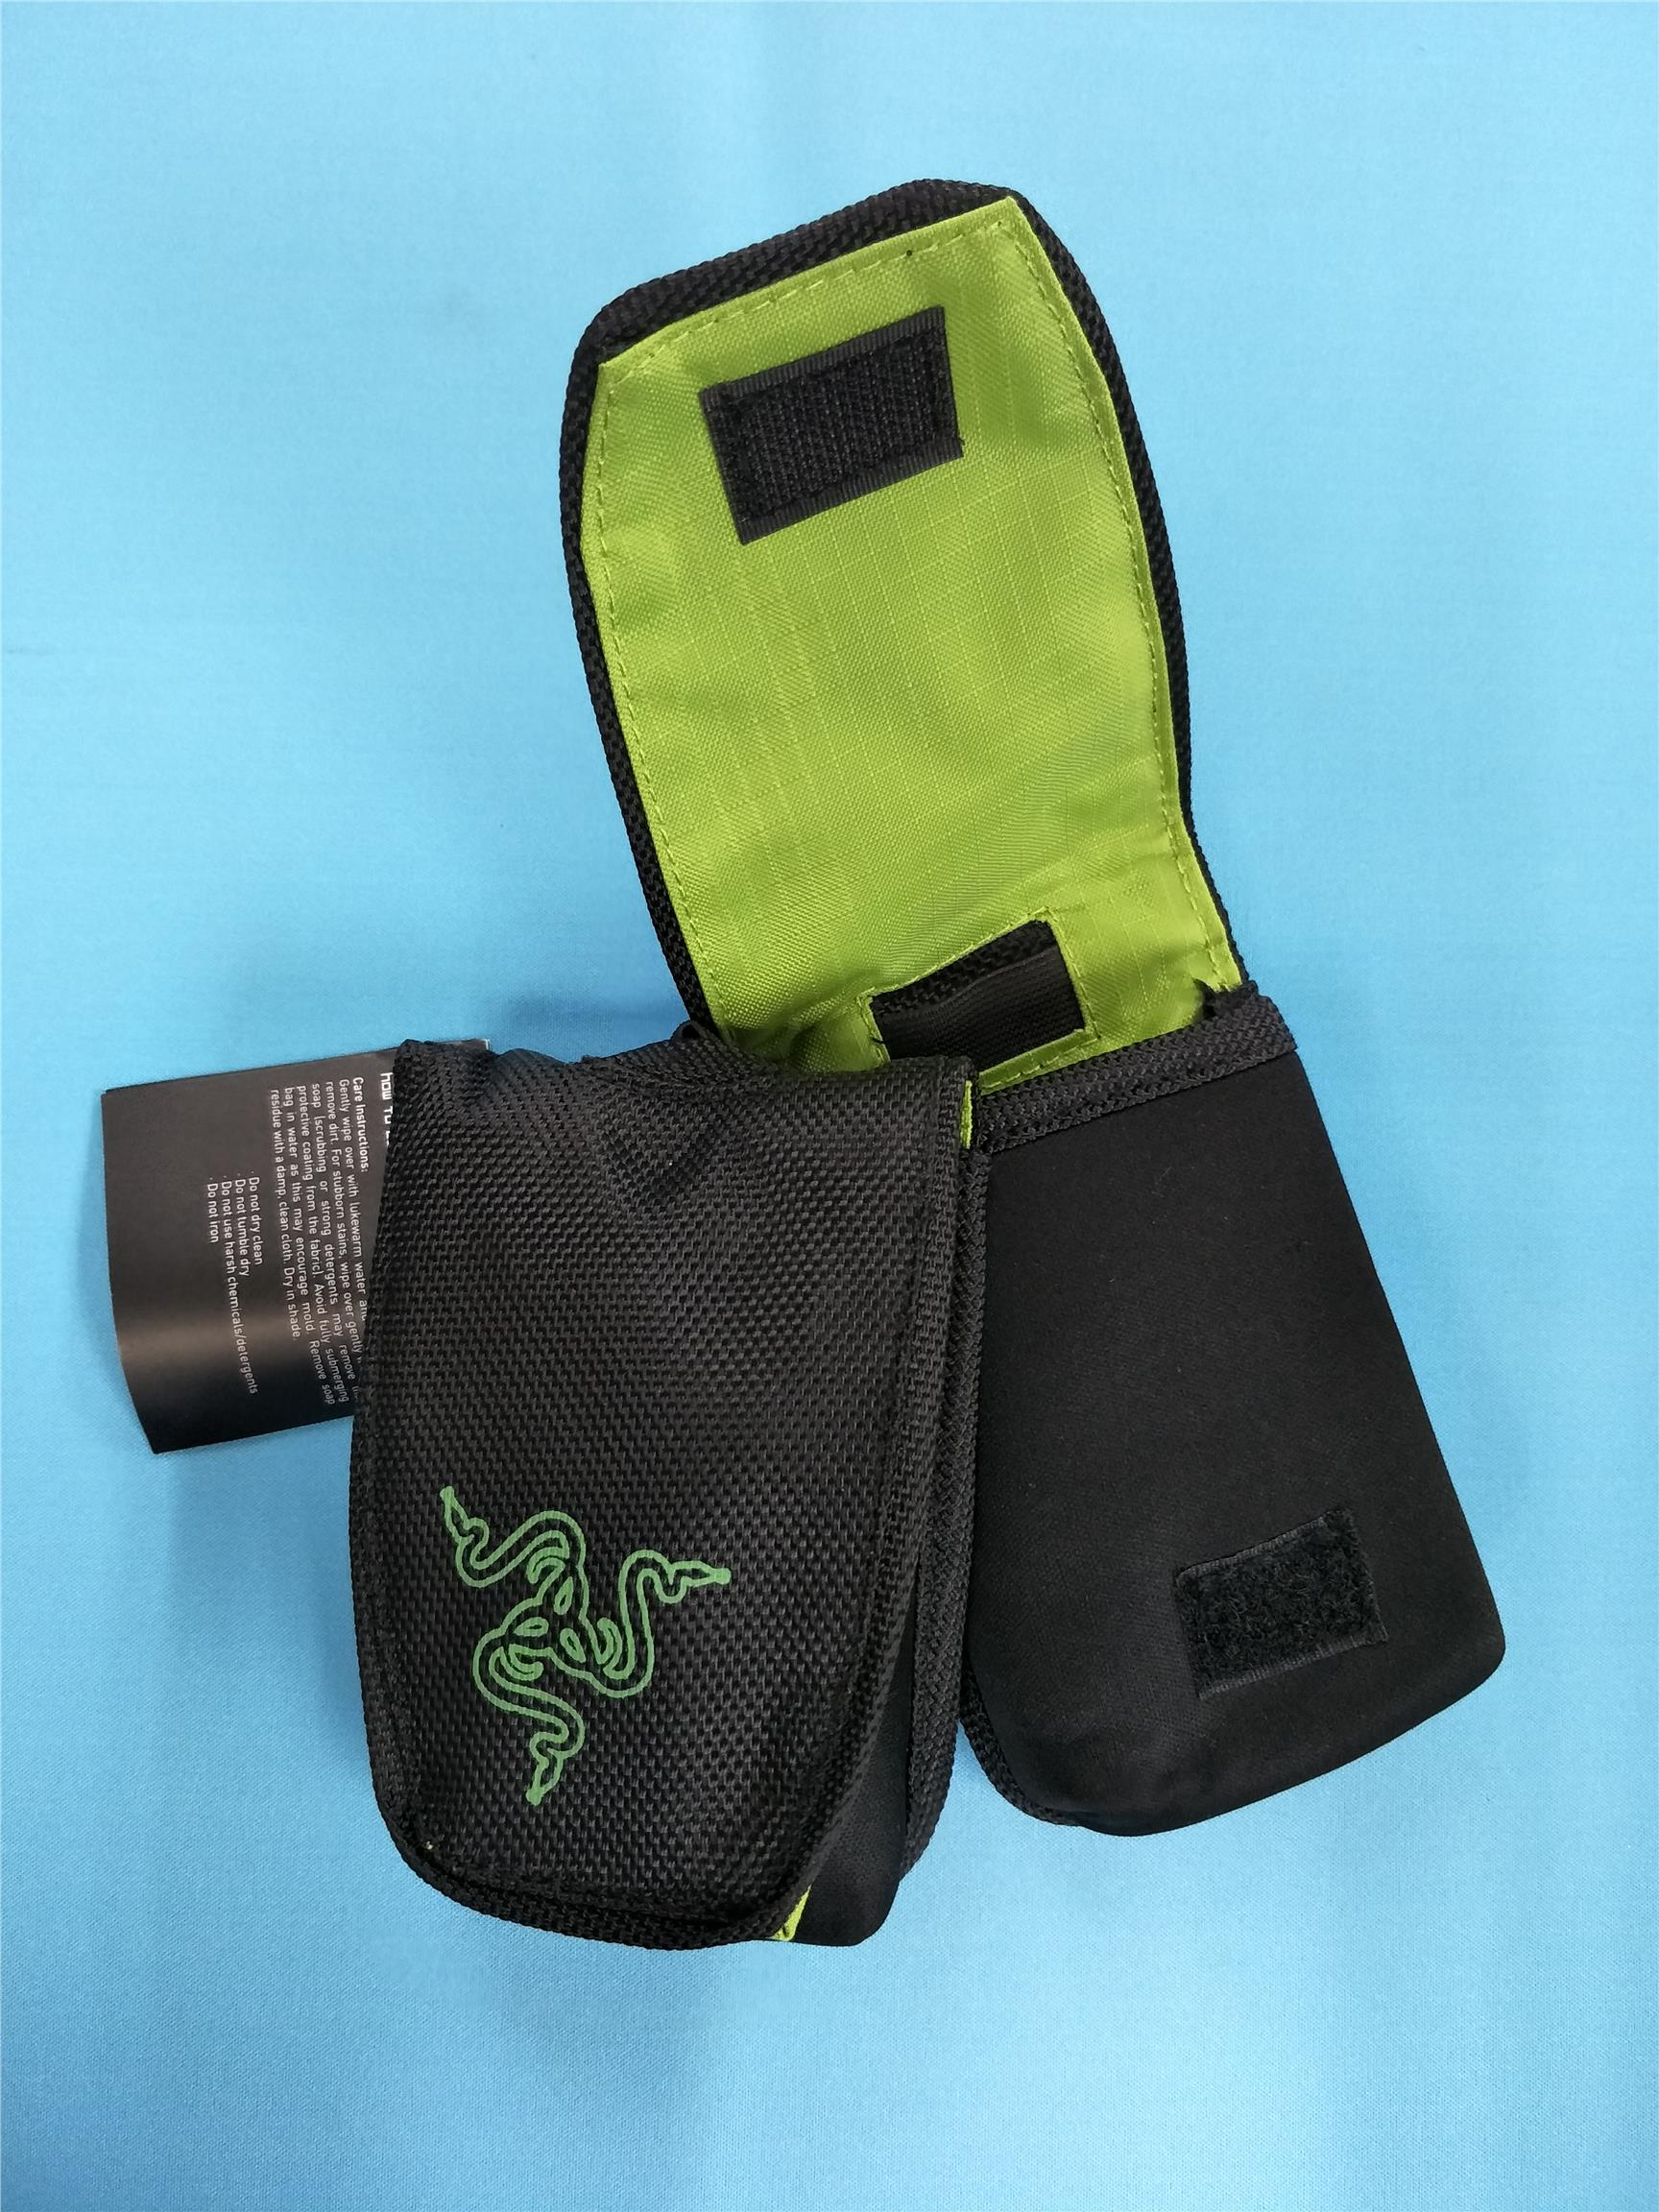 Razer Accessory Pouch - (Clear Stock)